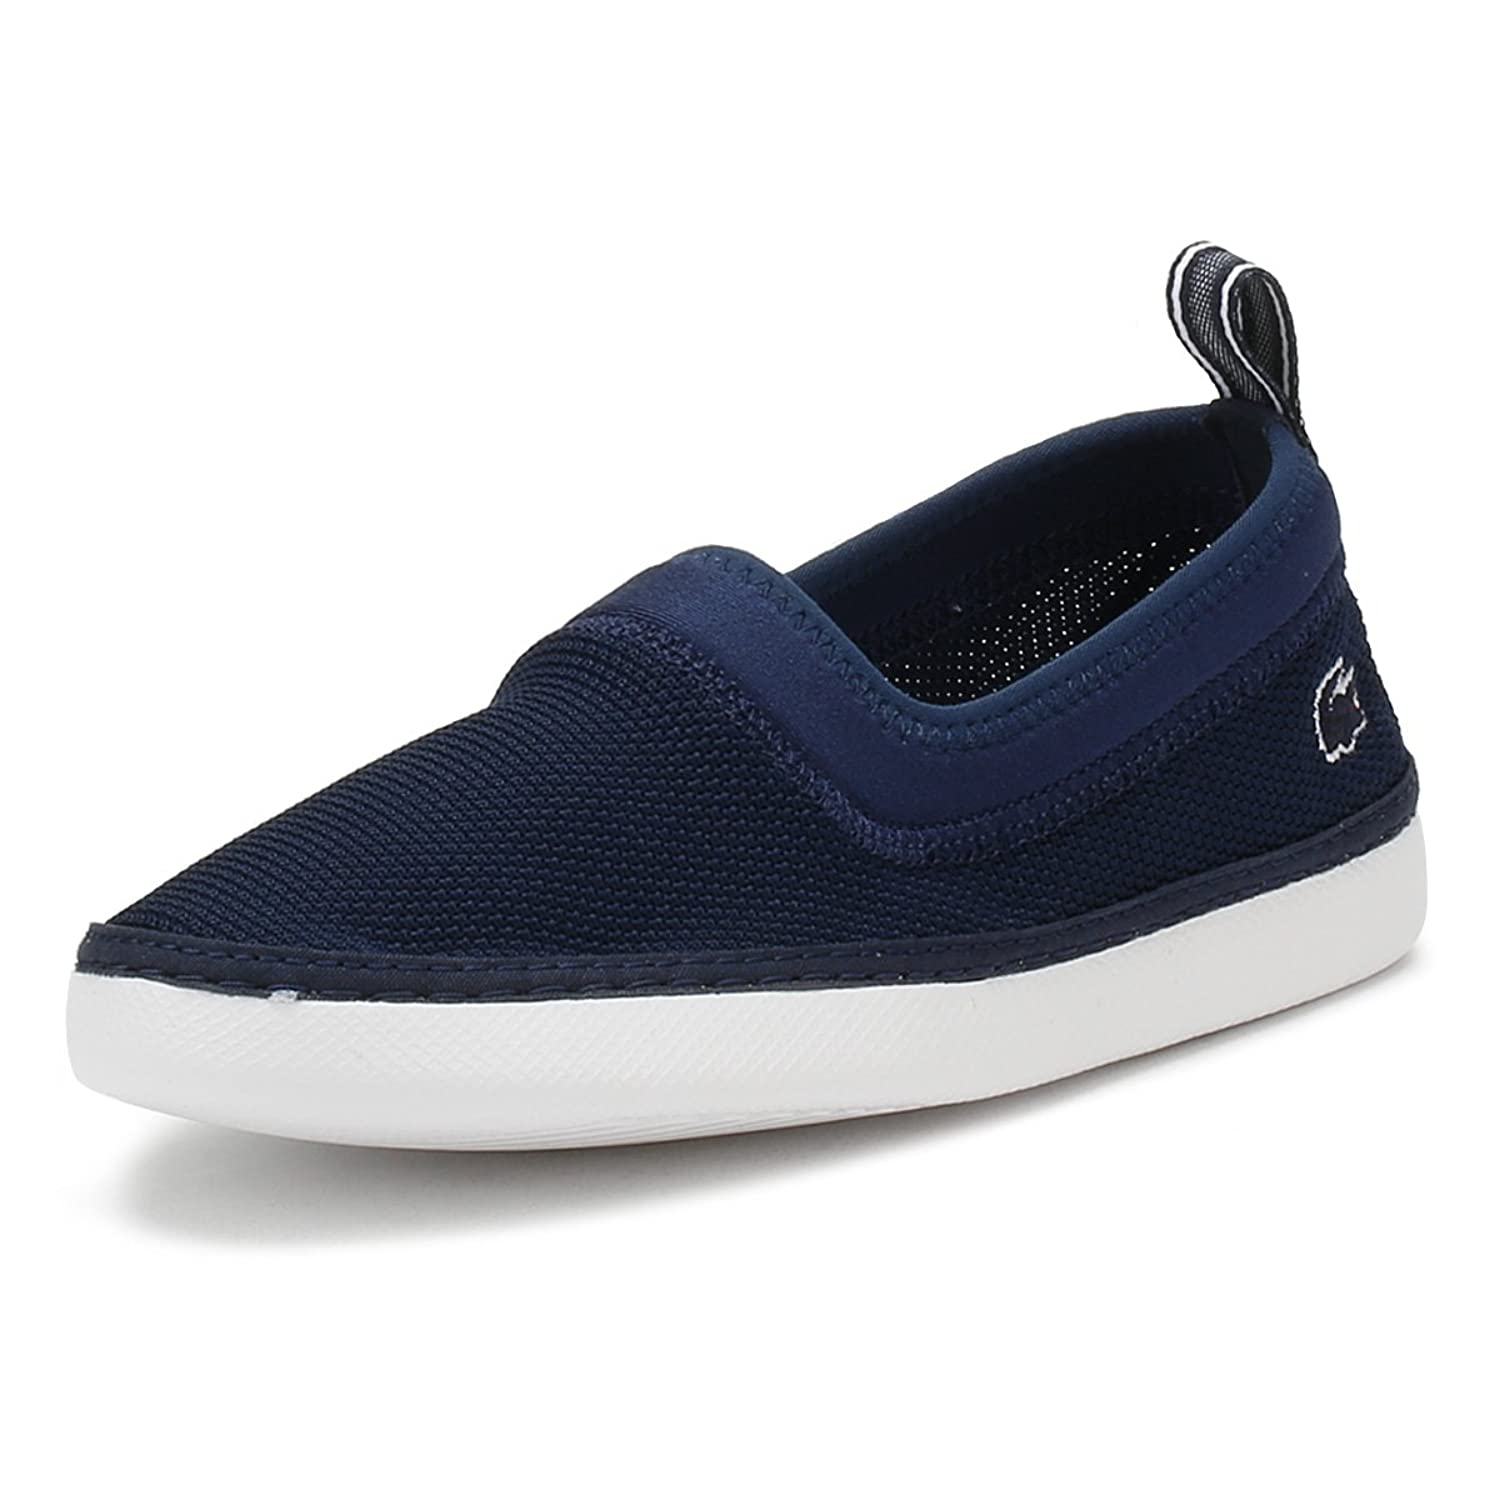 cb778a08fd4 Lacoste Junior Navy White L.YDRO 118 1 Espadrilles  Amazon.co.uk  Shoes    Bags